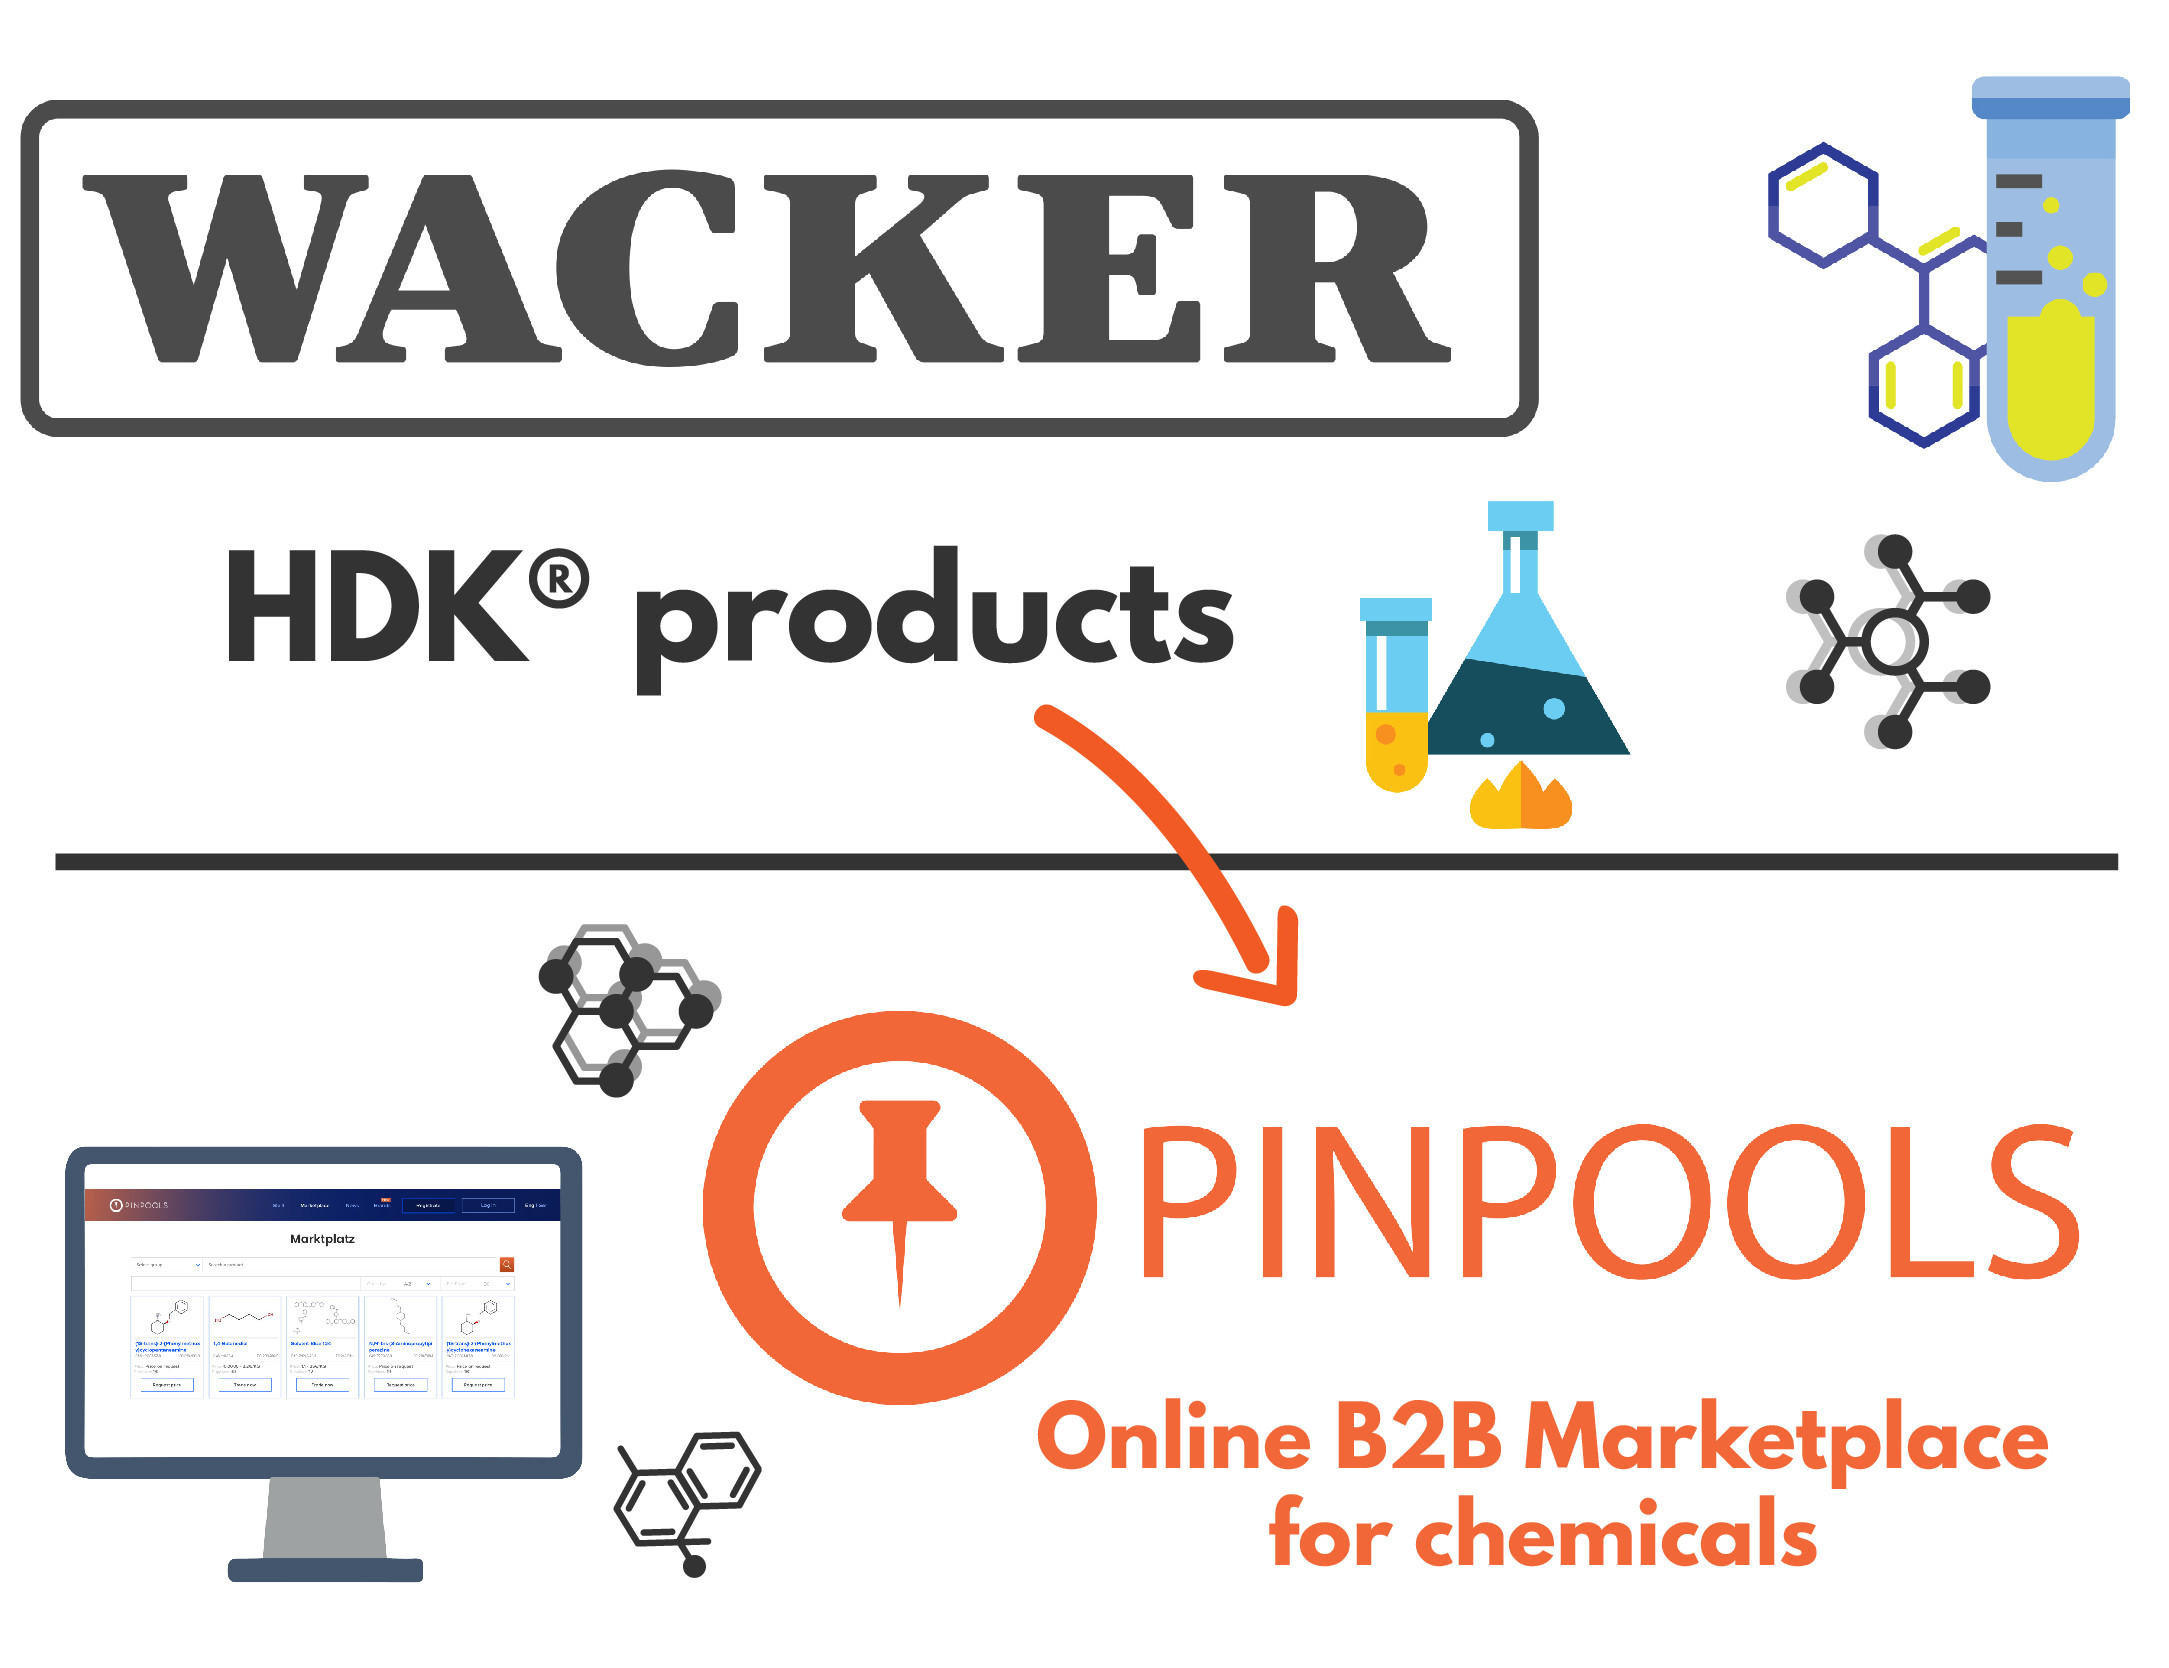 WACKER Chemie AG is now with HDK products on PINPOOLS Marketplace!